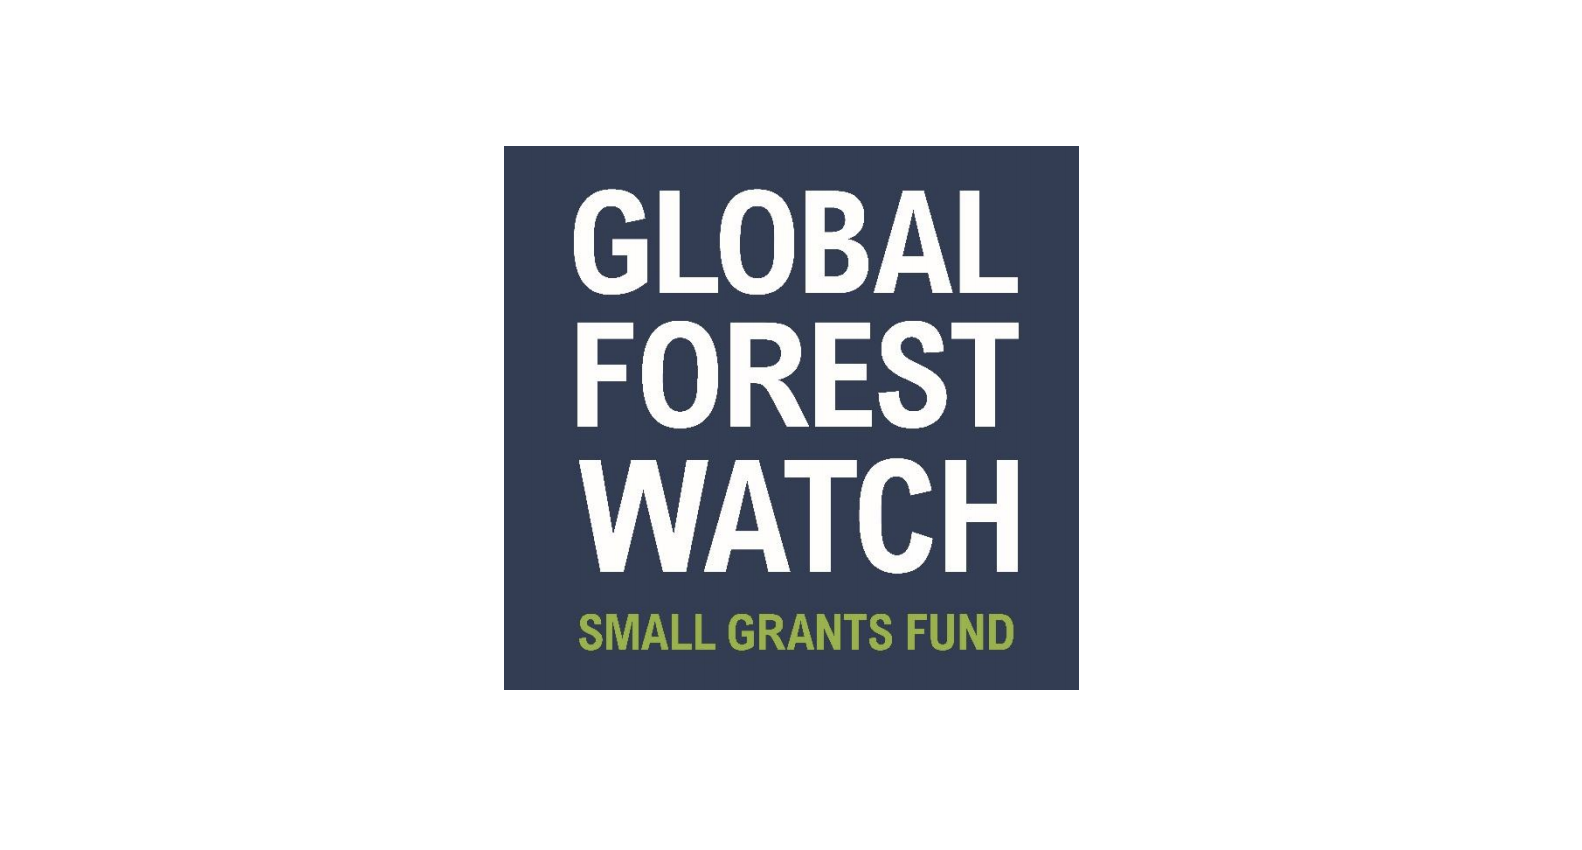 Global Forest Watch (GFW) Small Grants Fund 2019 for Organizations (Up to $40,000 USD)